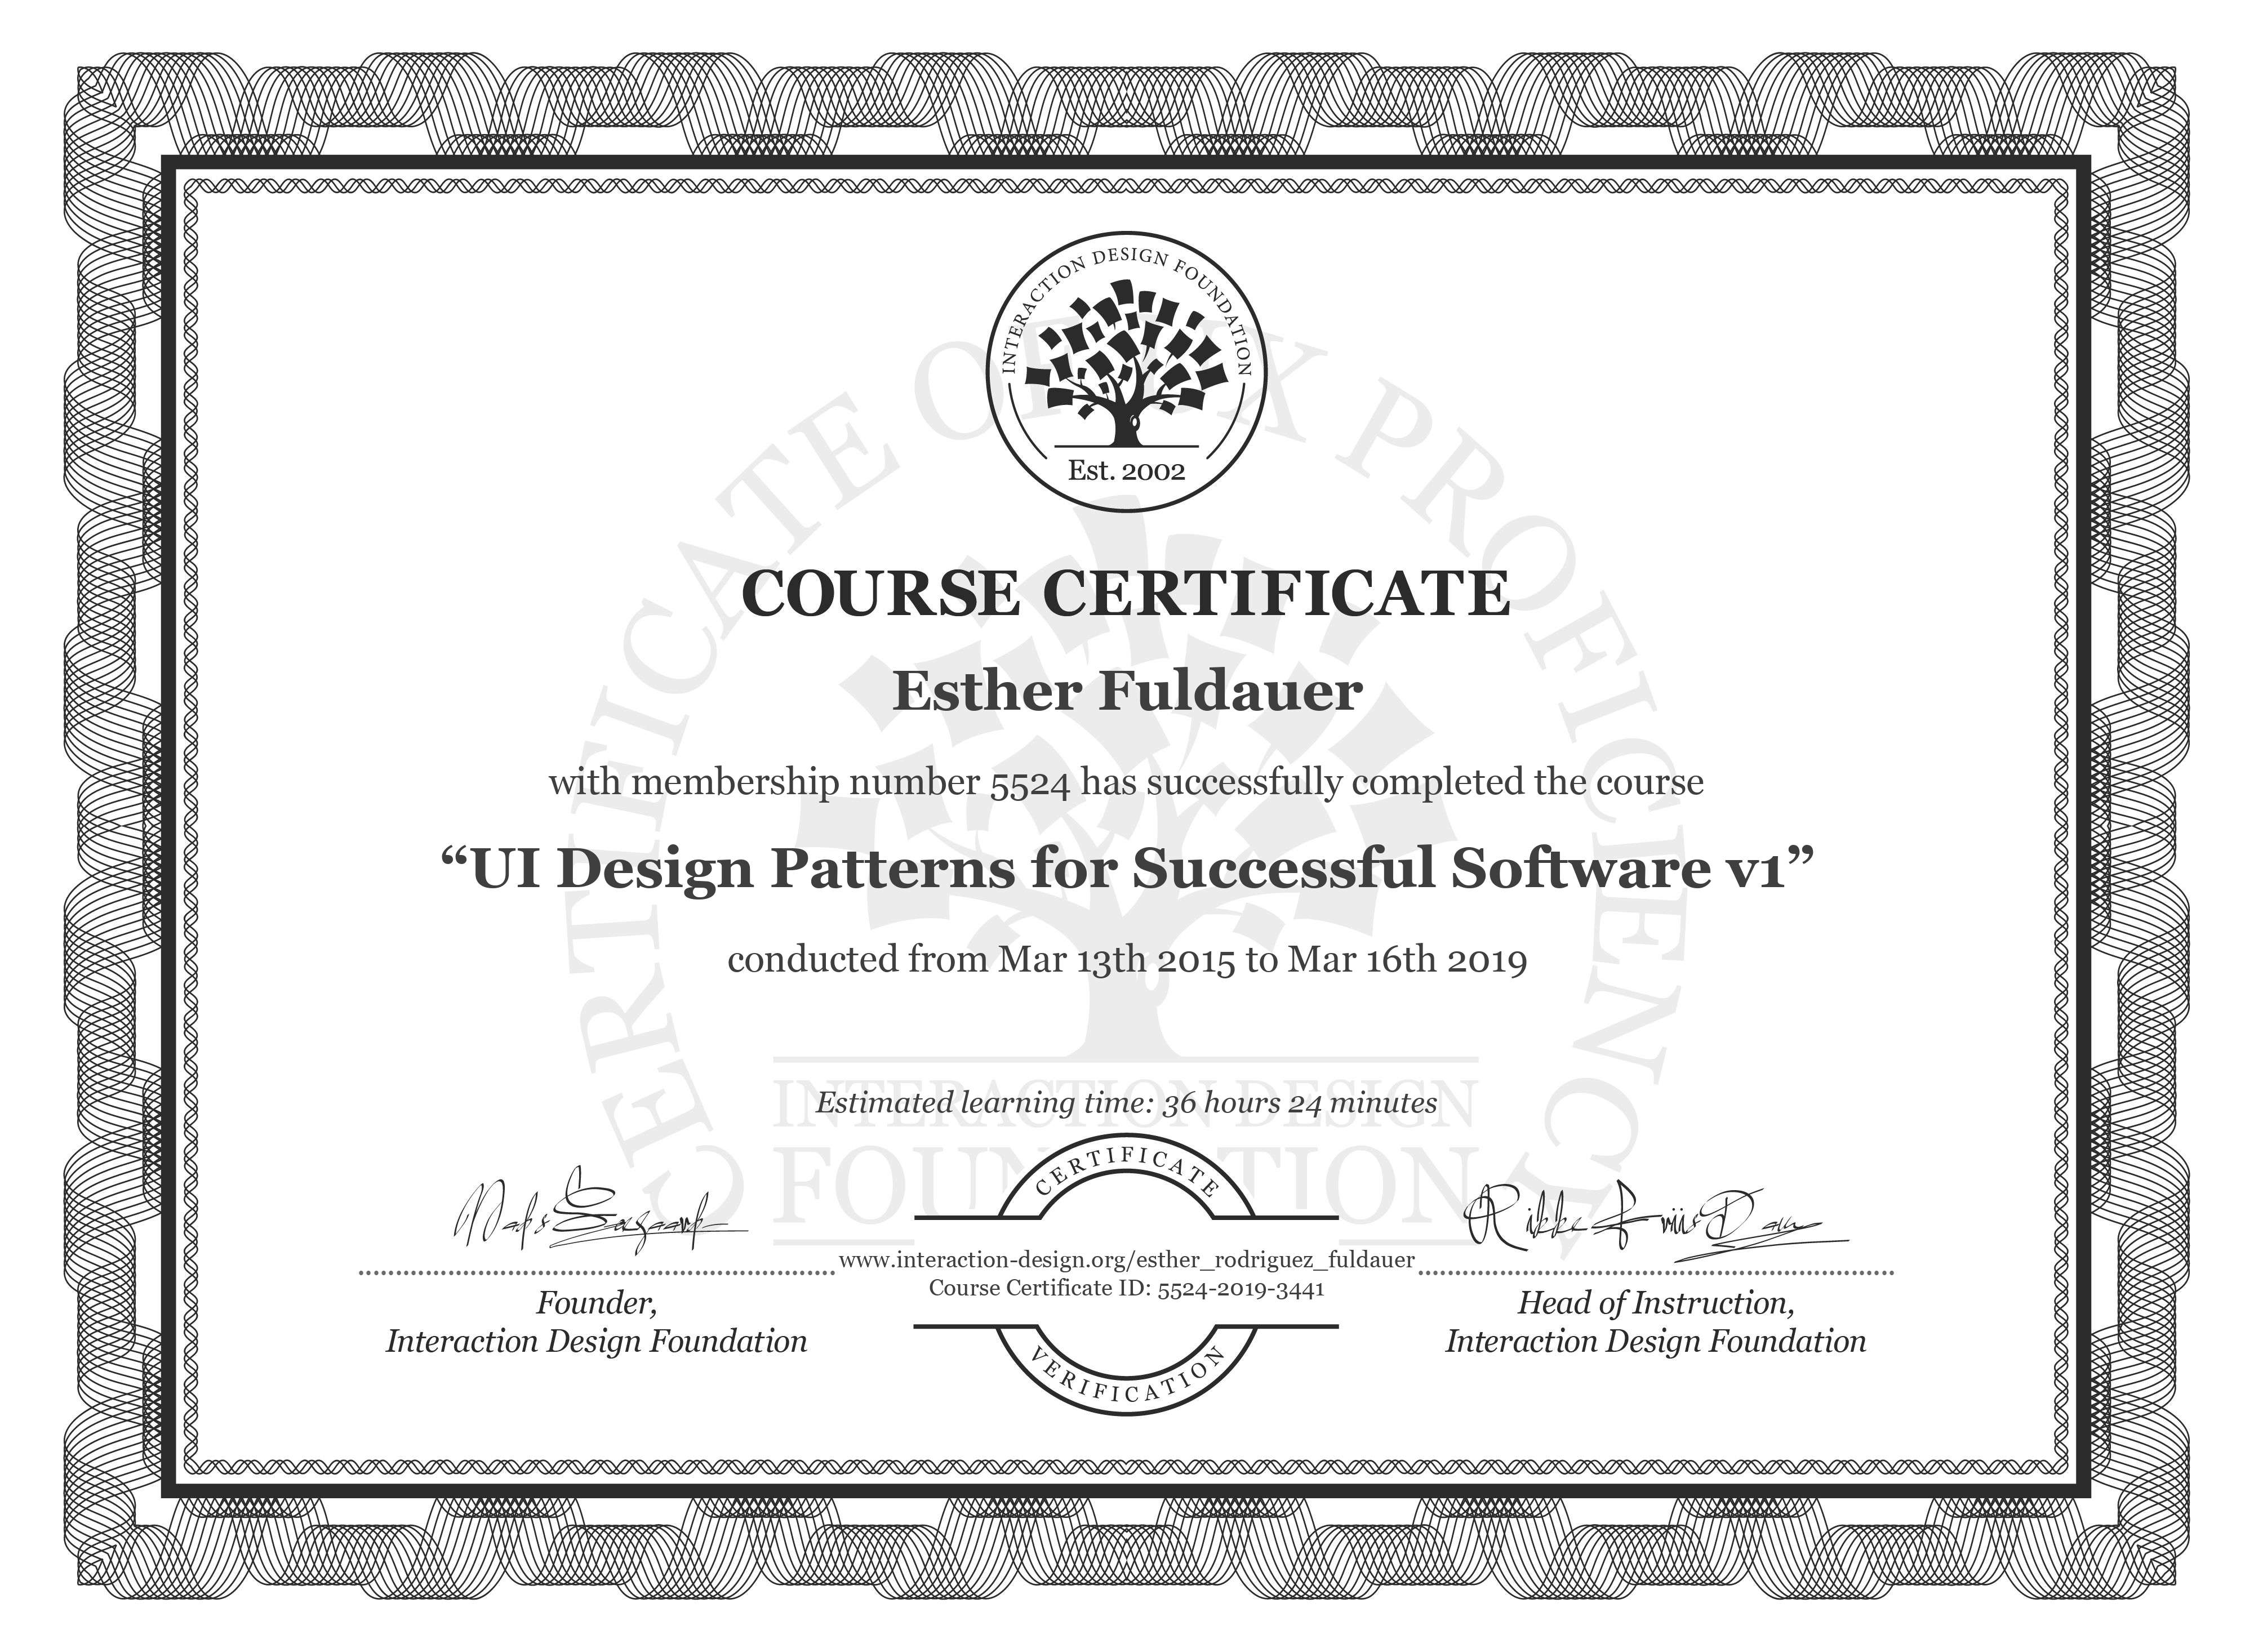 Esther Fuldauer's Course Certificate: UI Design Patterns for Successful Software